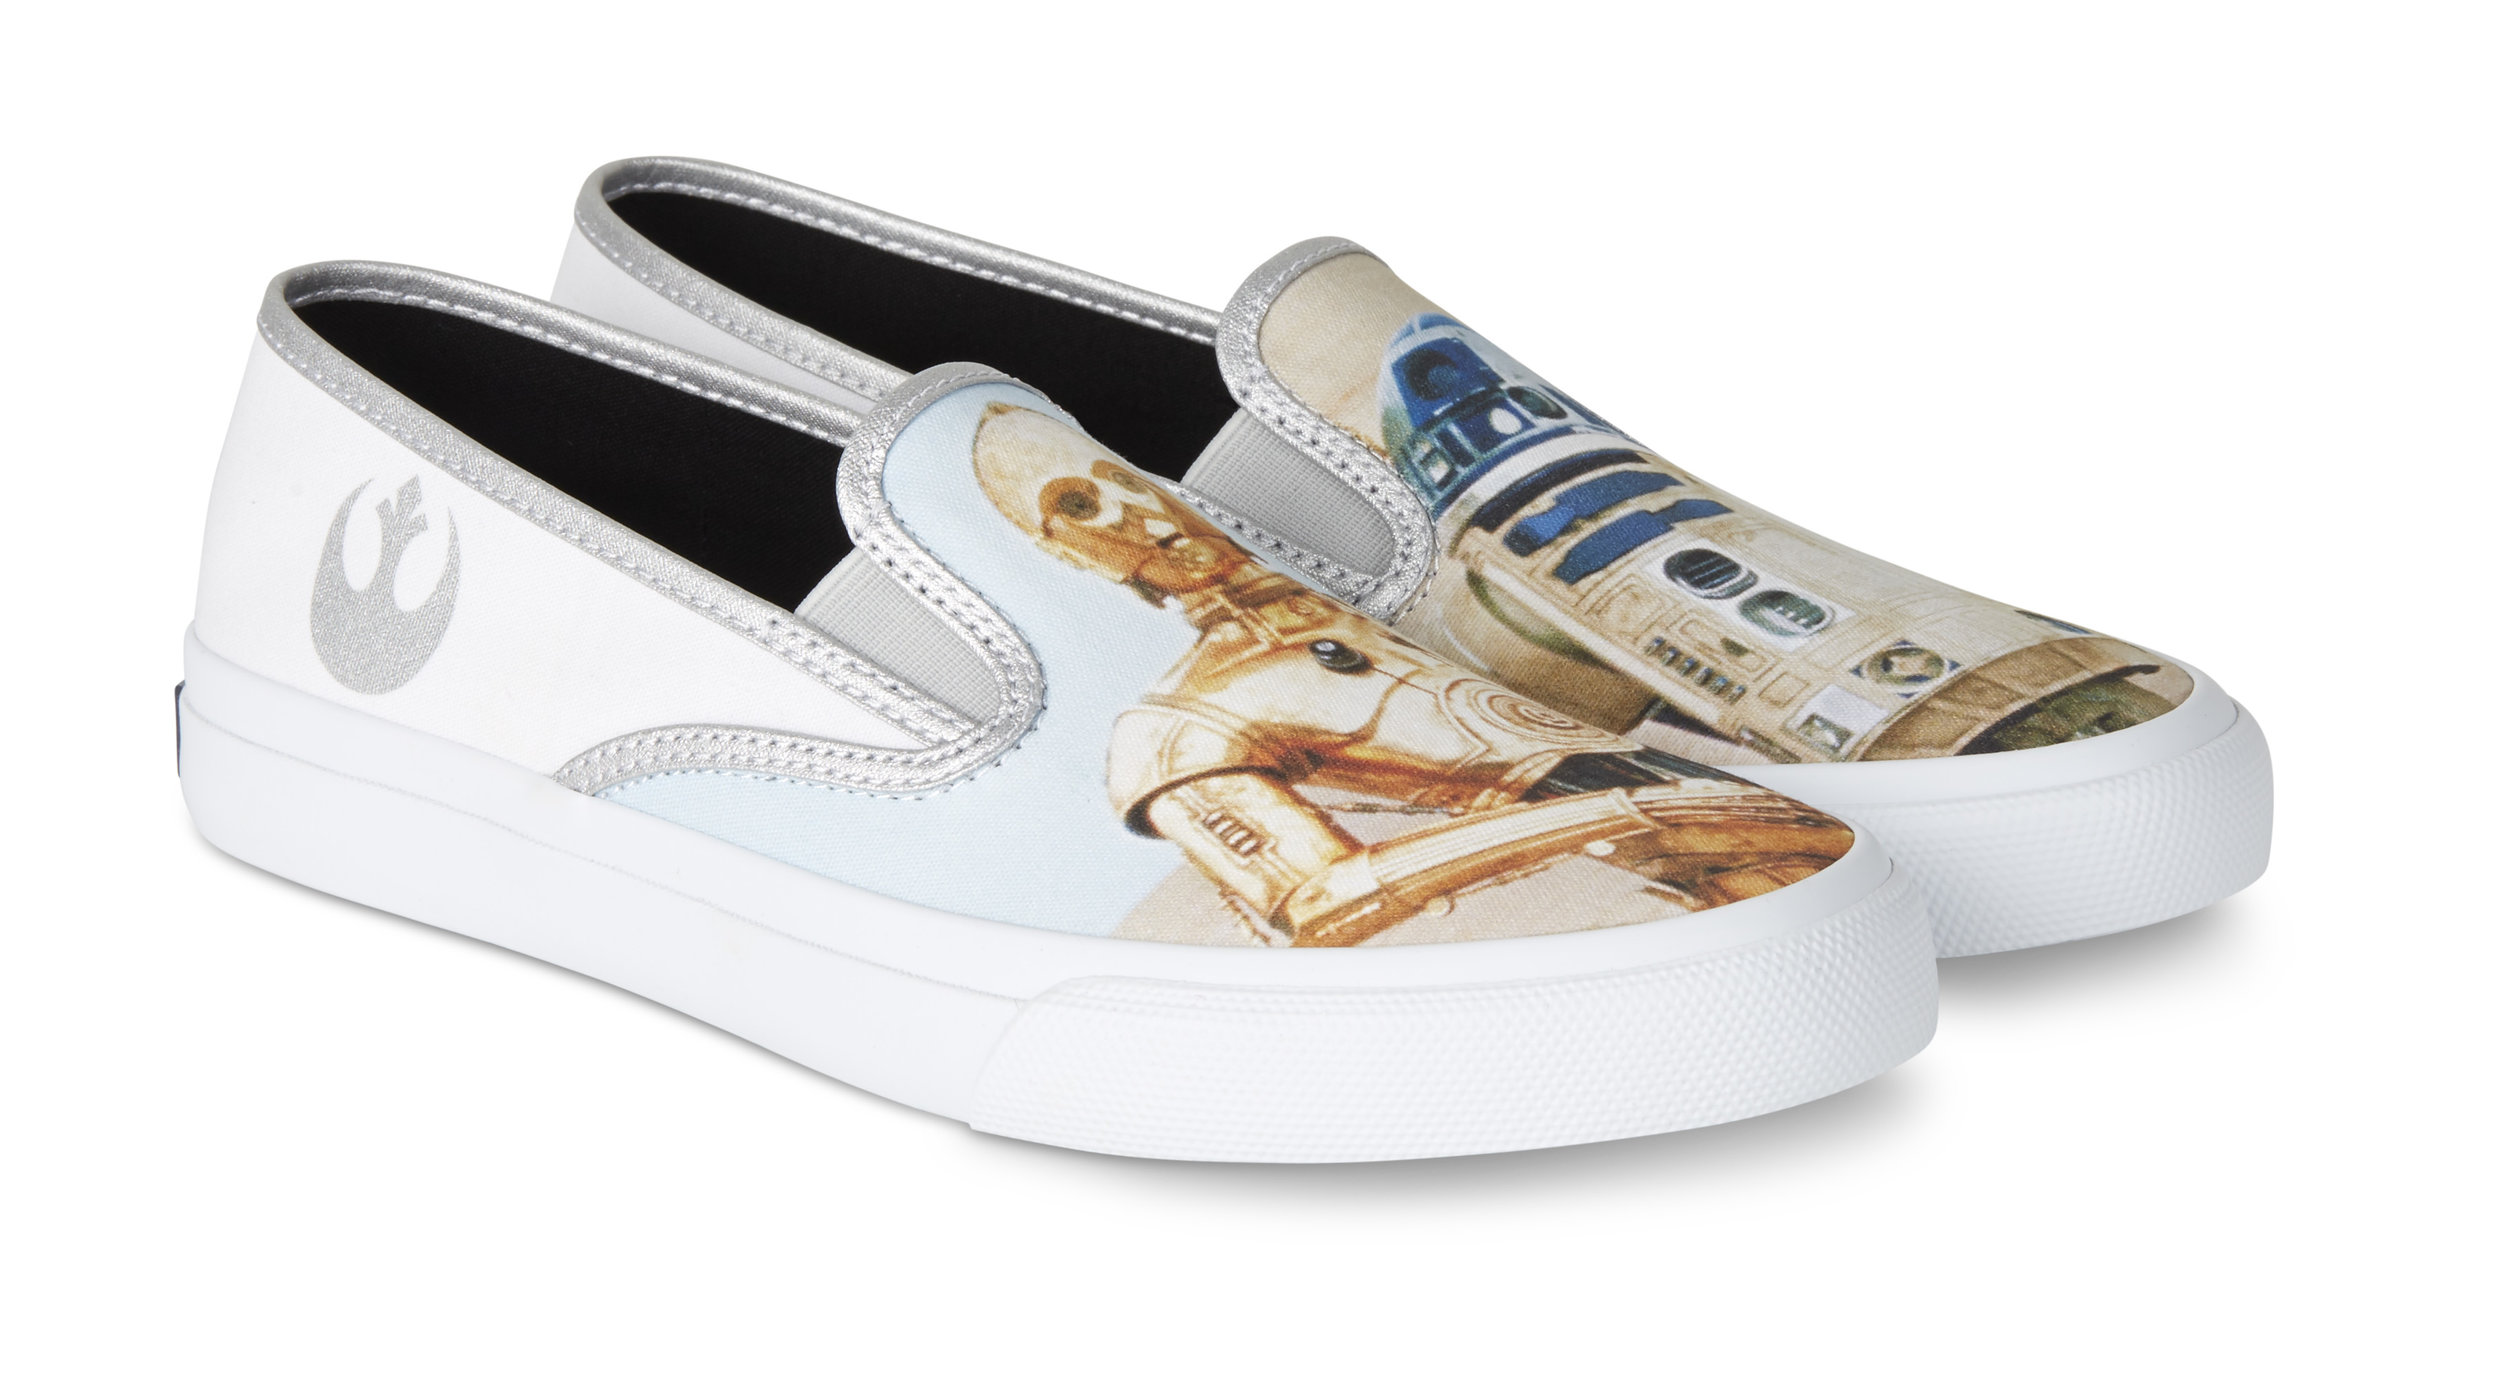 check-out-this-cool-line-of-star-wars-themed-shoes-from-sperry4.jpg